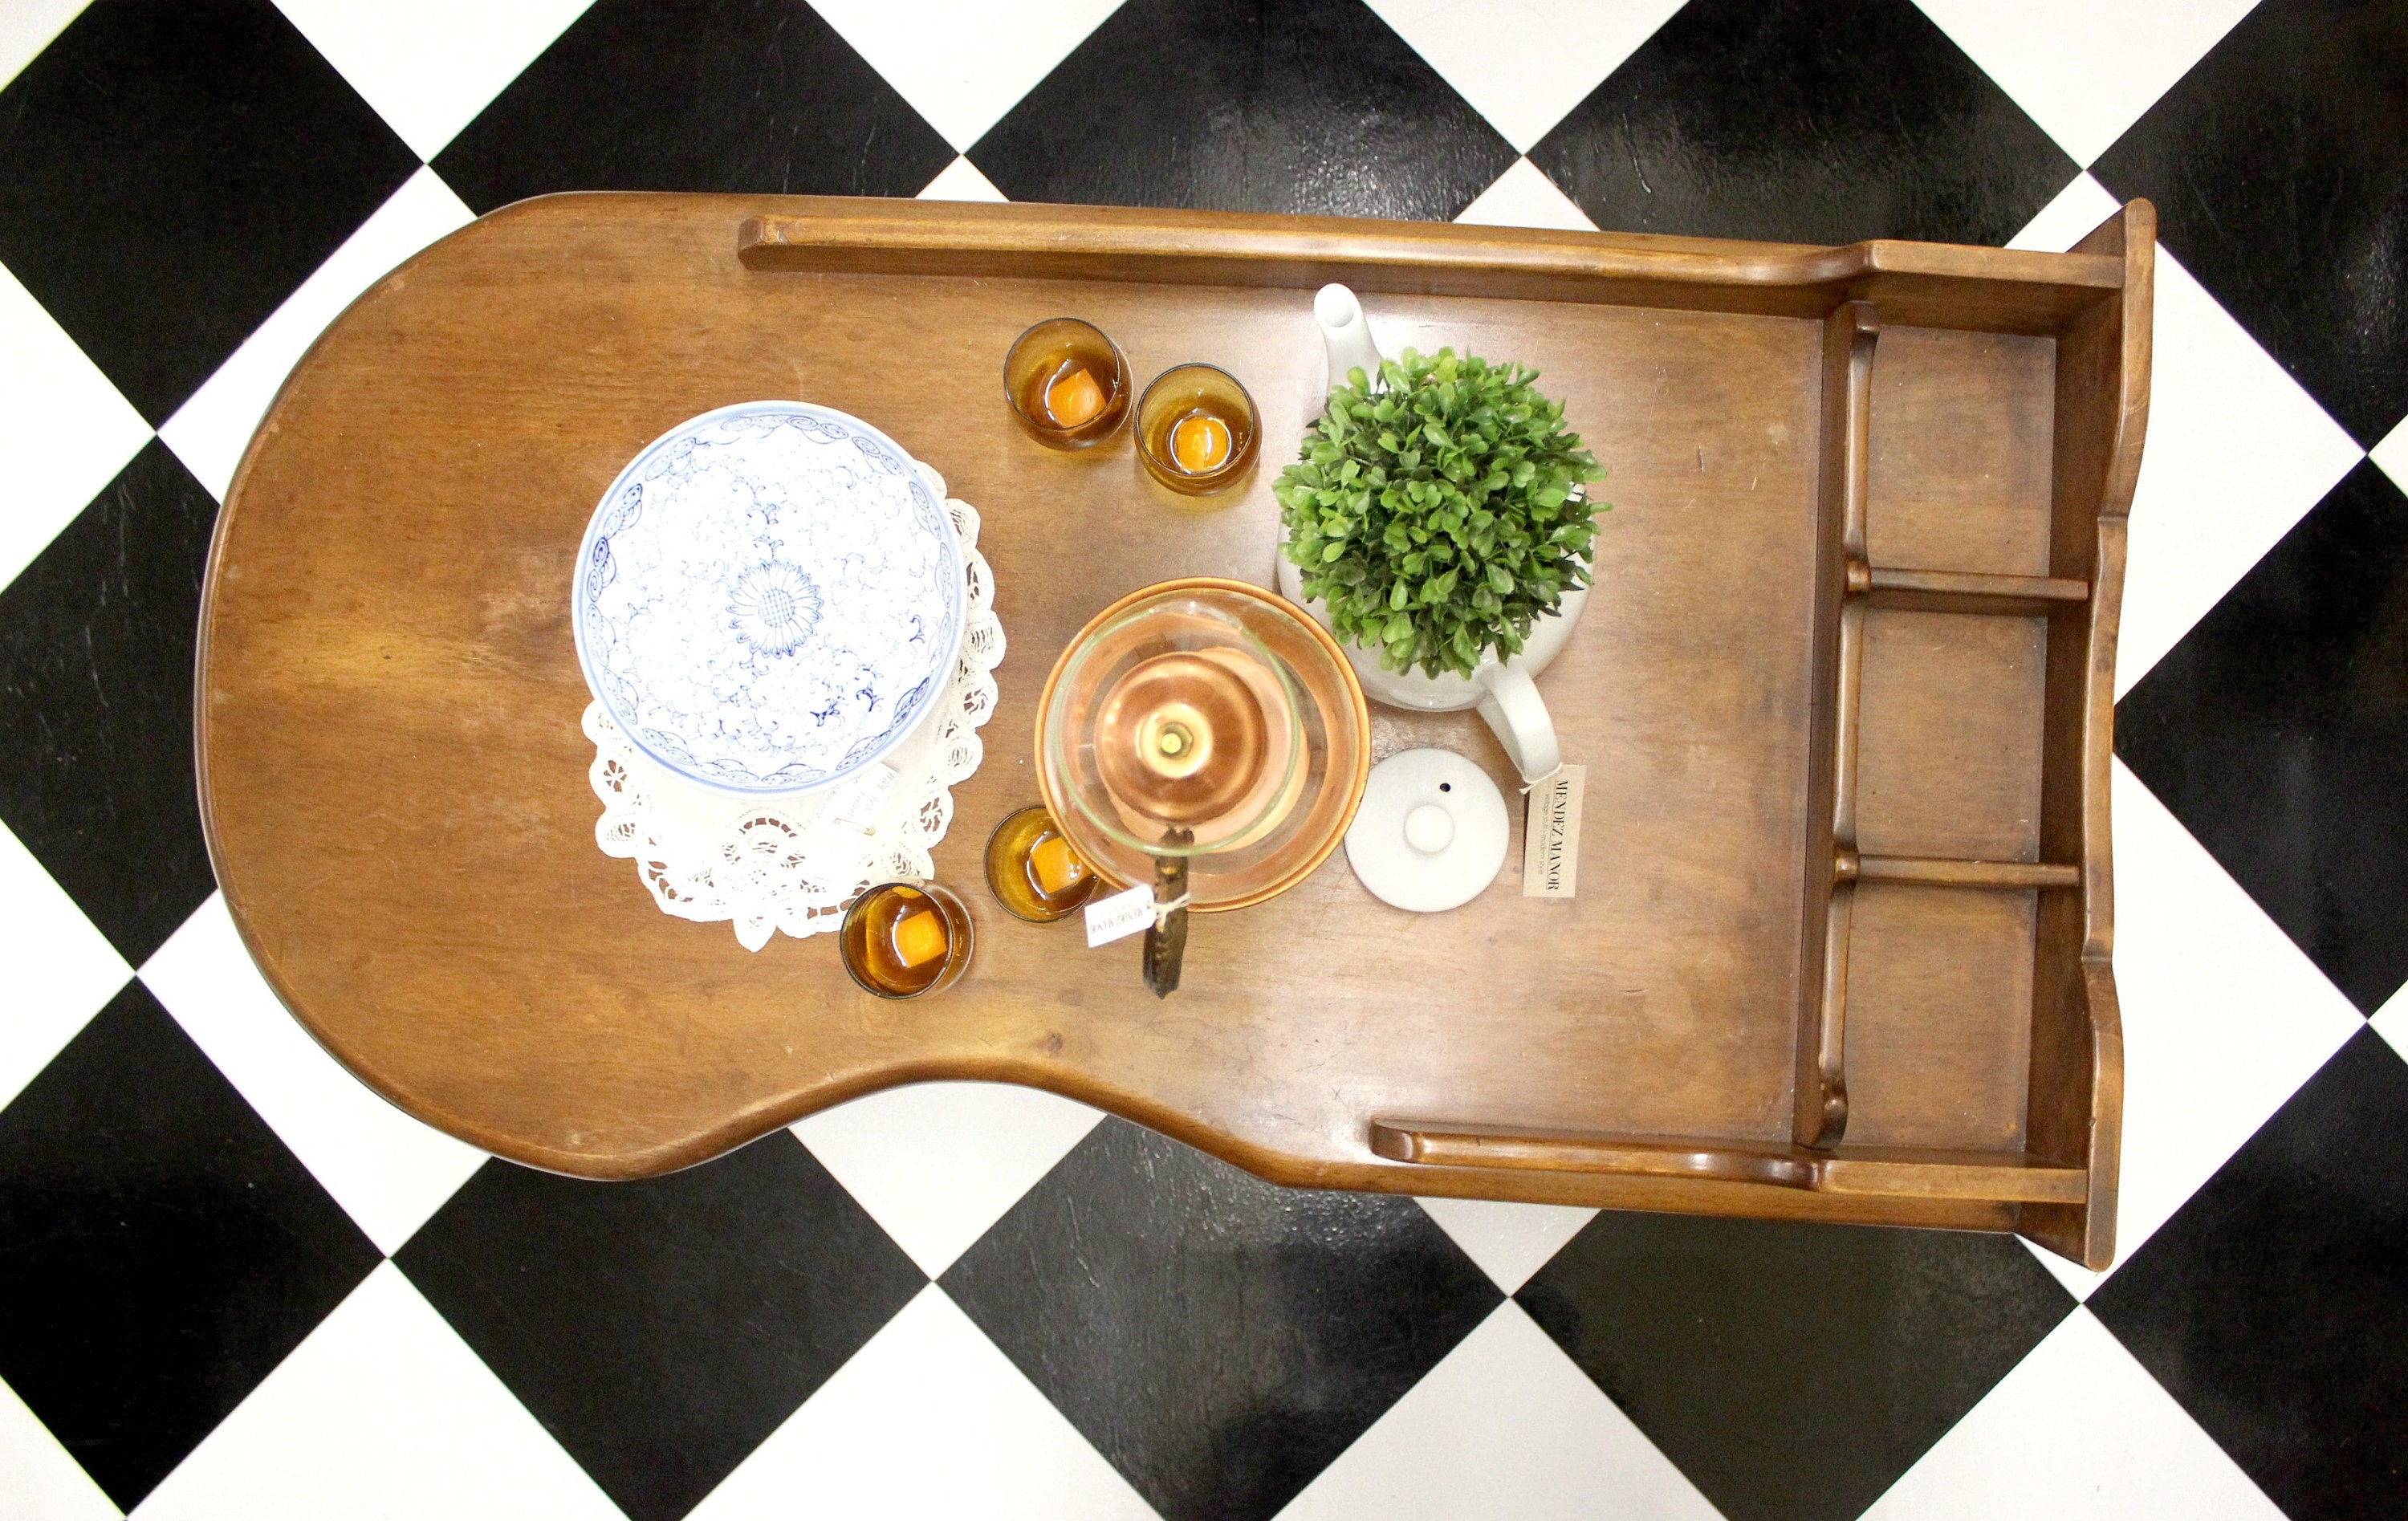 bohemian style wood coffee table via mendez manor